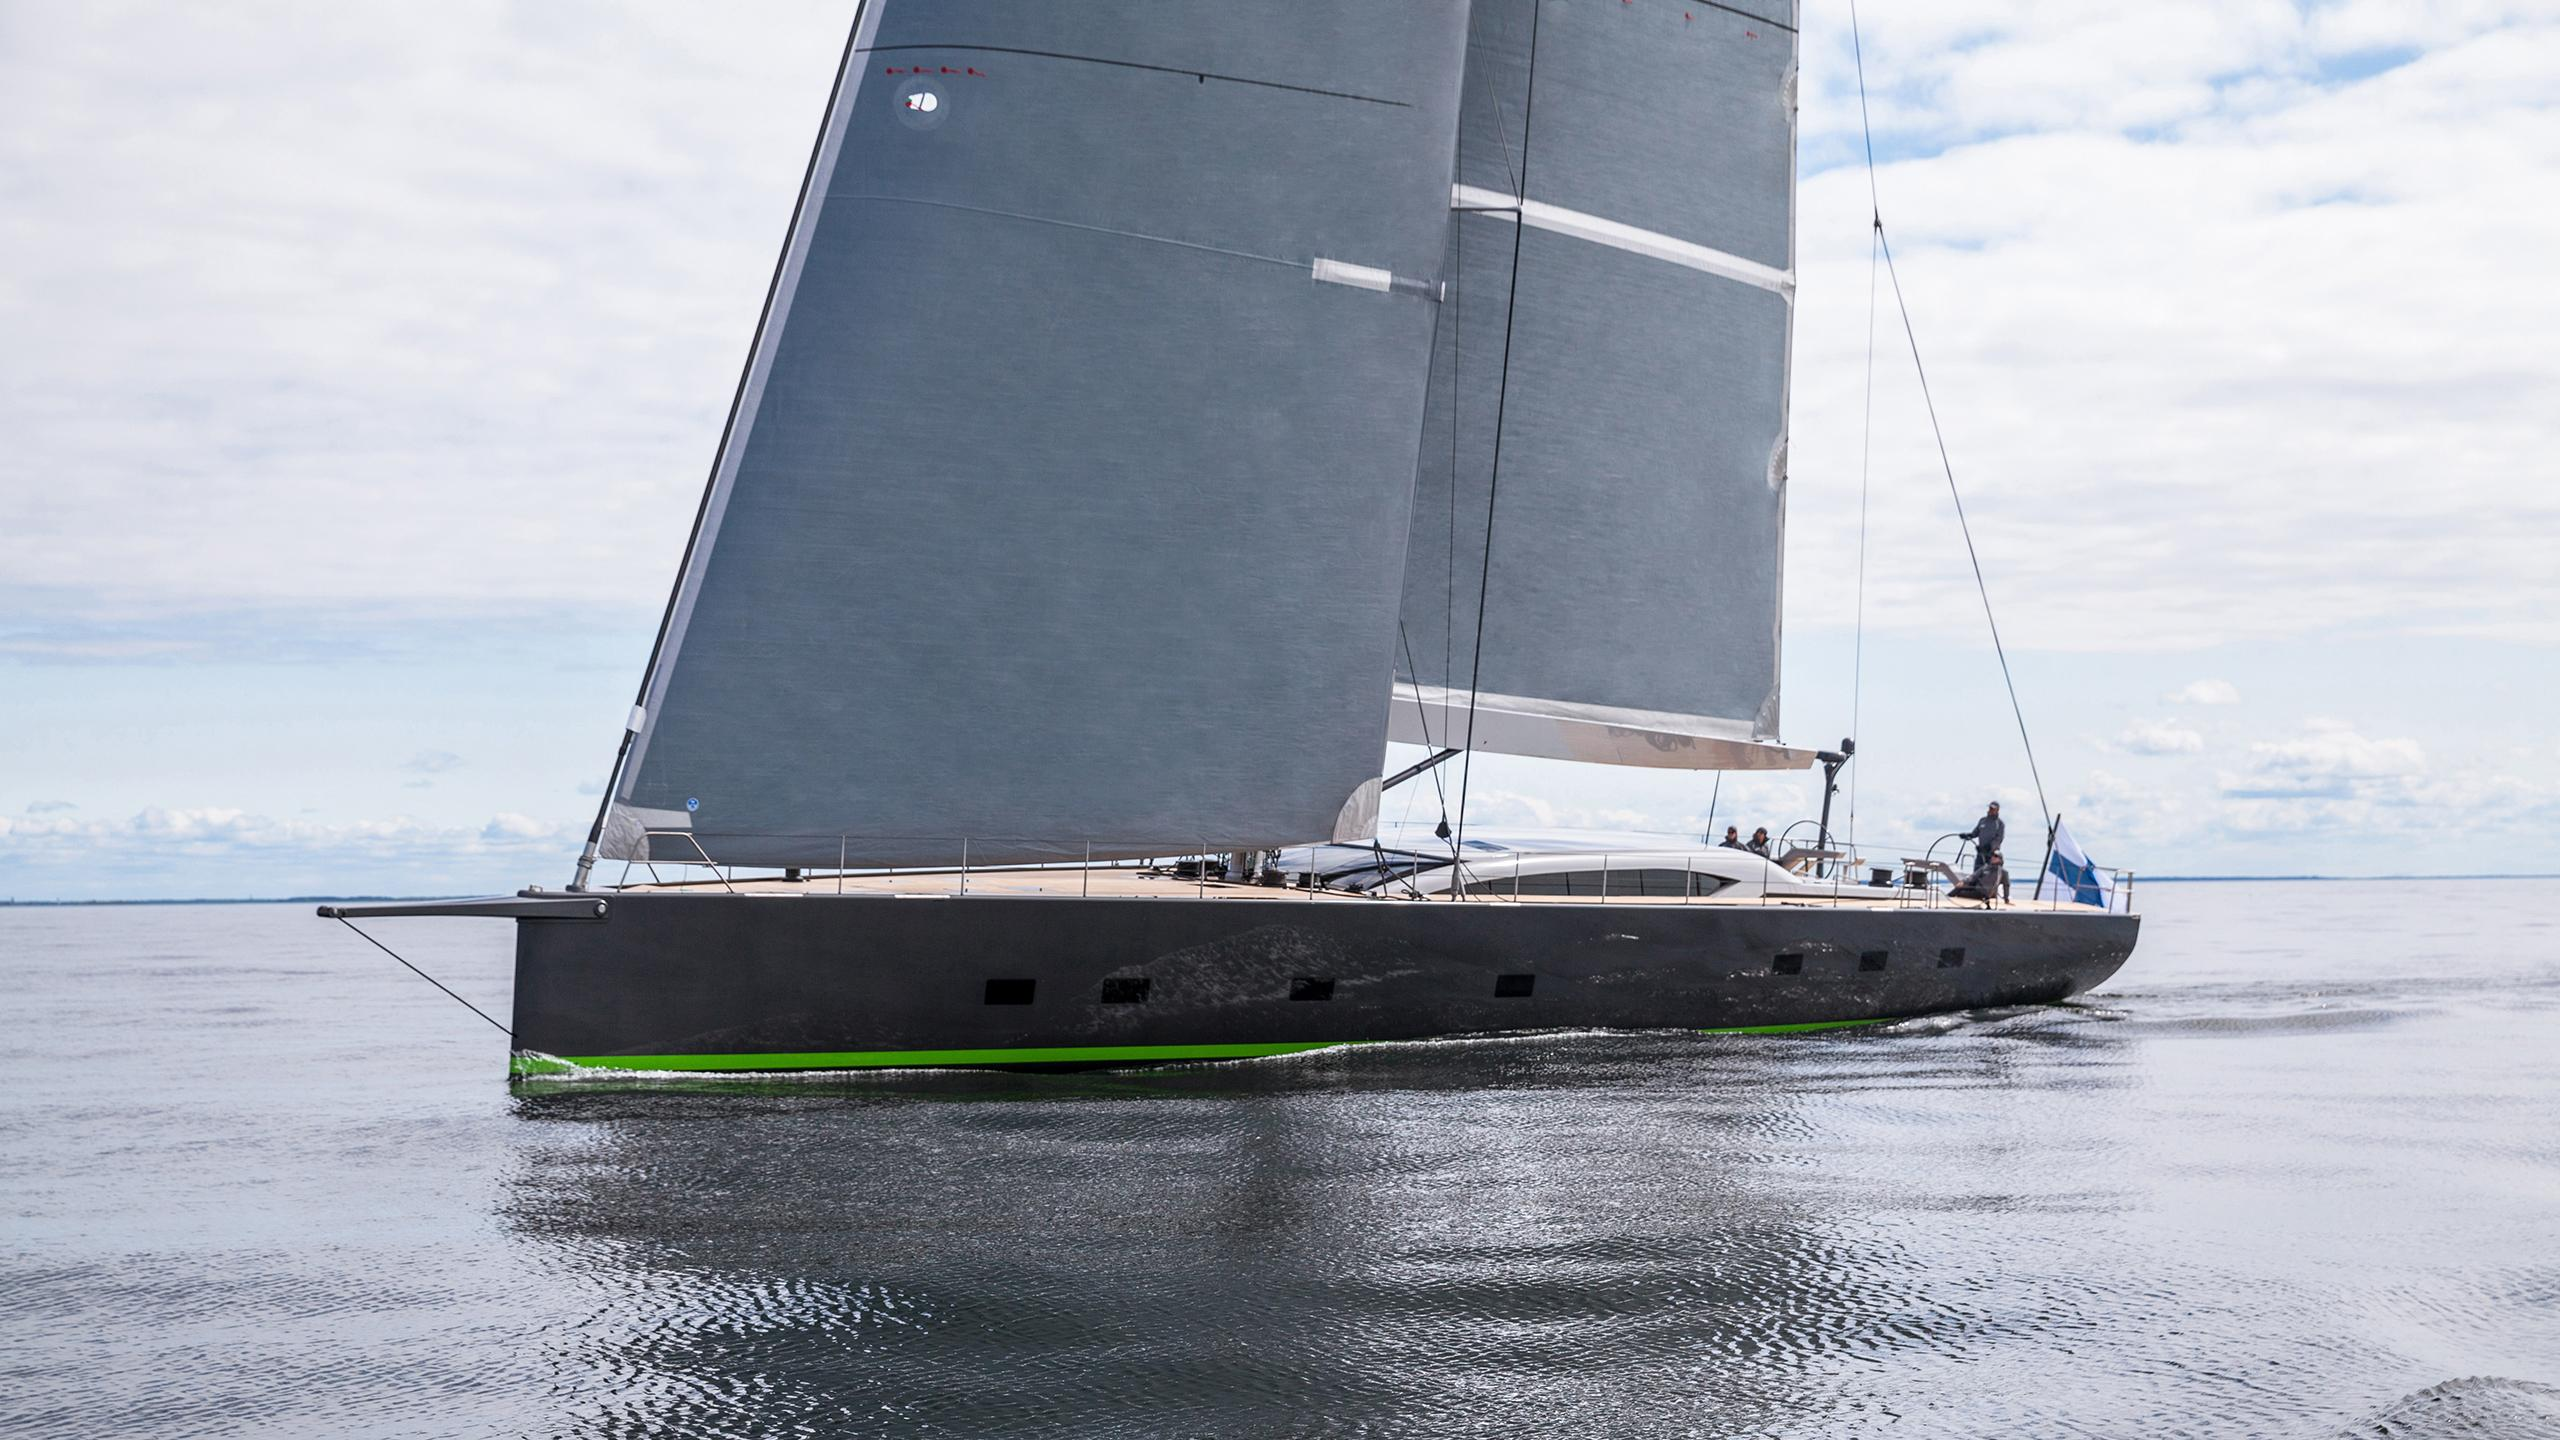 Winwin-sailing-yacht-baltic-2014-33m-profile-cruising